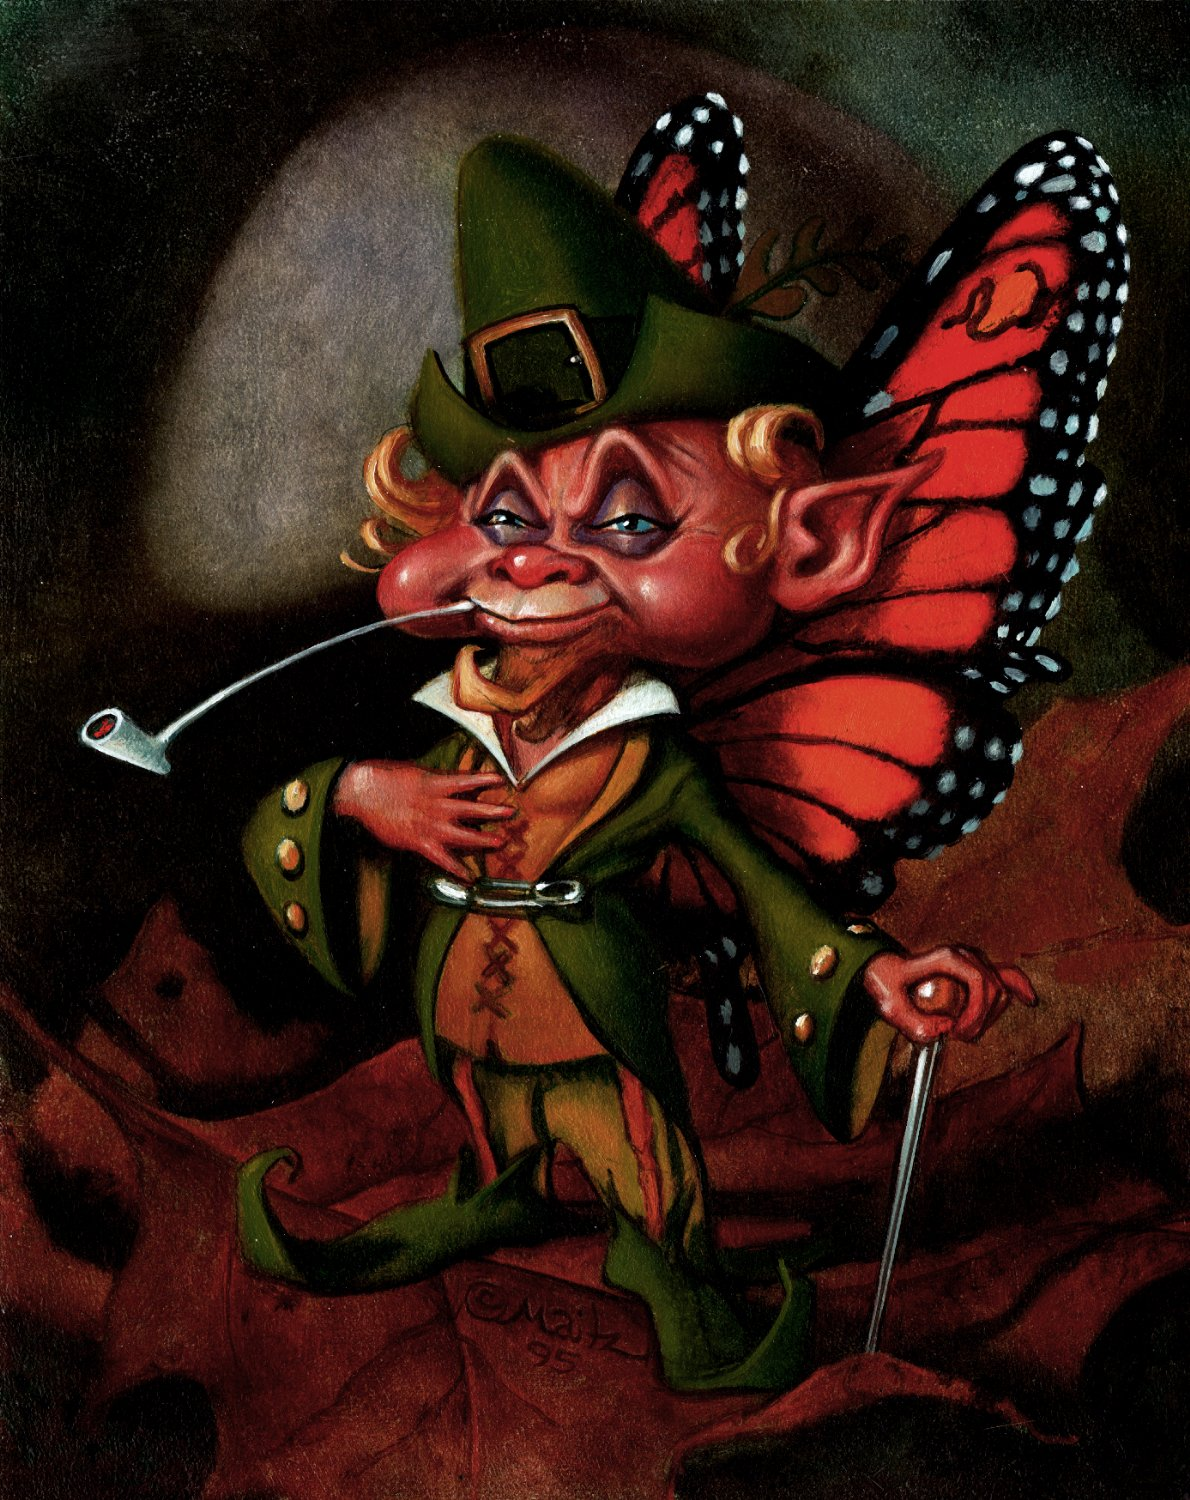 GUARDIANS Collectible Fantasy Card Painting #28 'MALE PIXIE' CARD (1995)